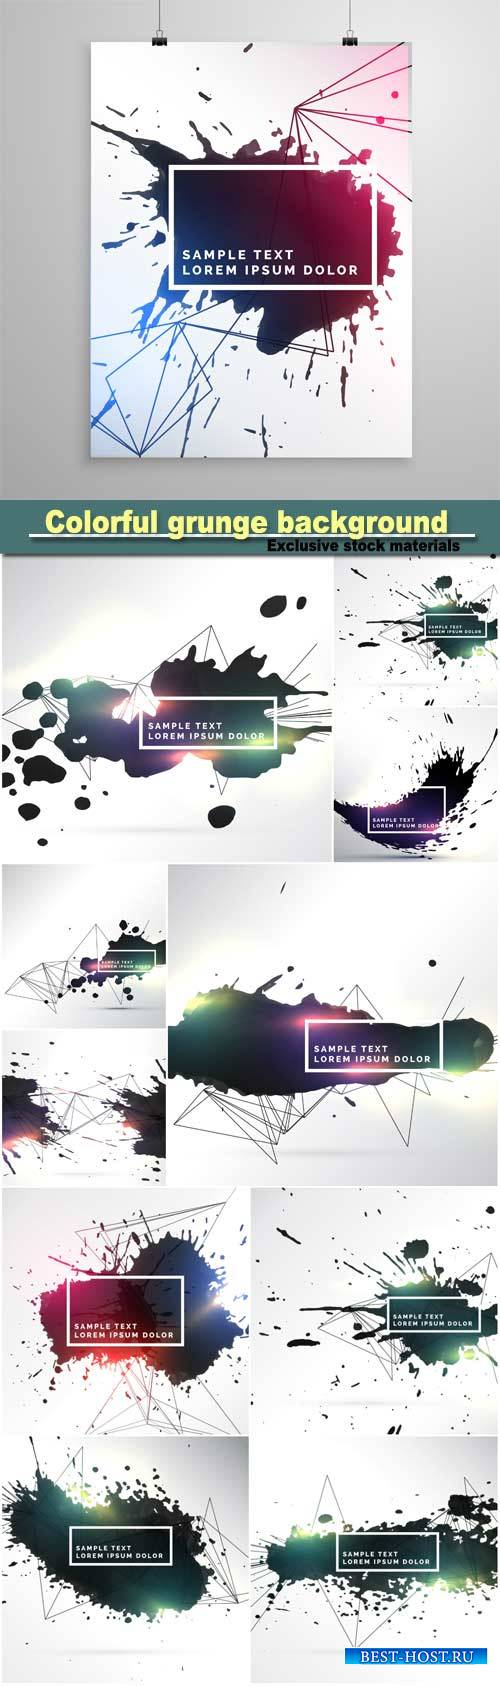 Abstract colorful ink grunge background